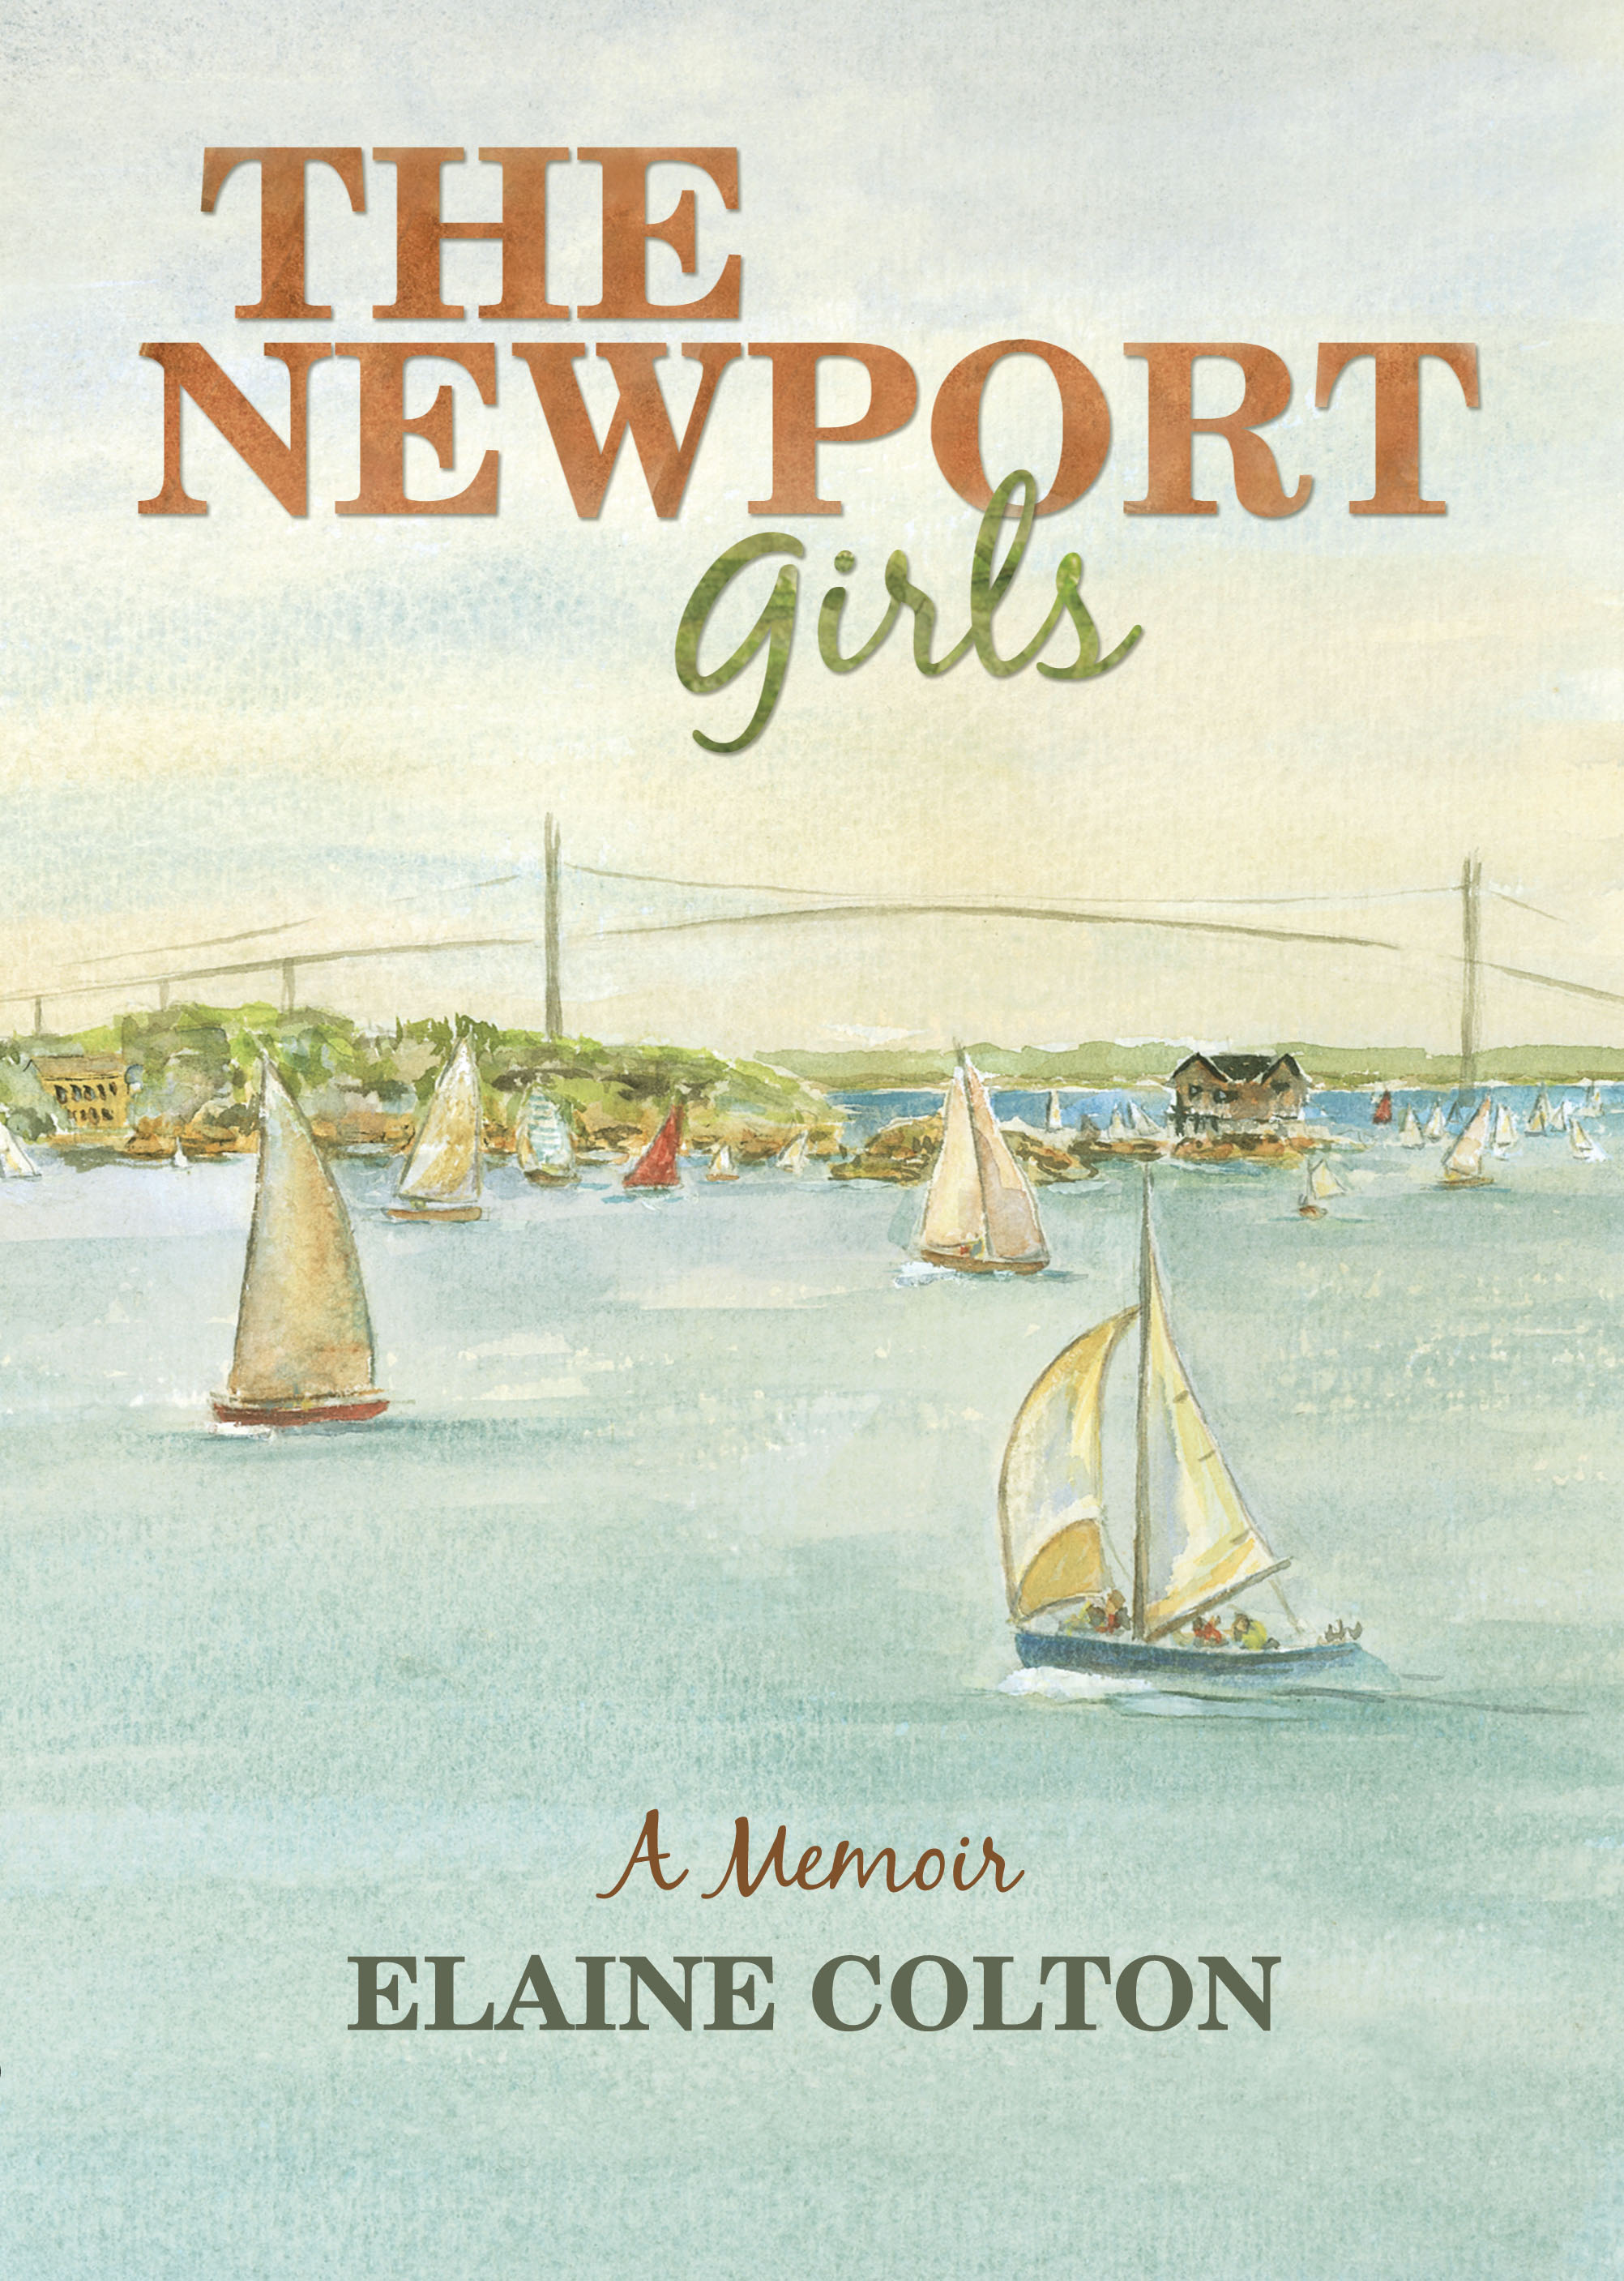 newport girls book cover